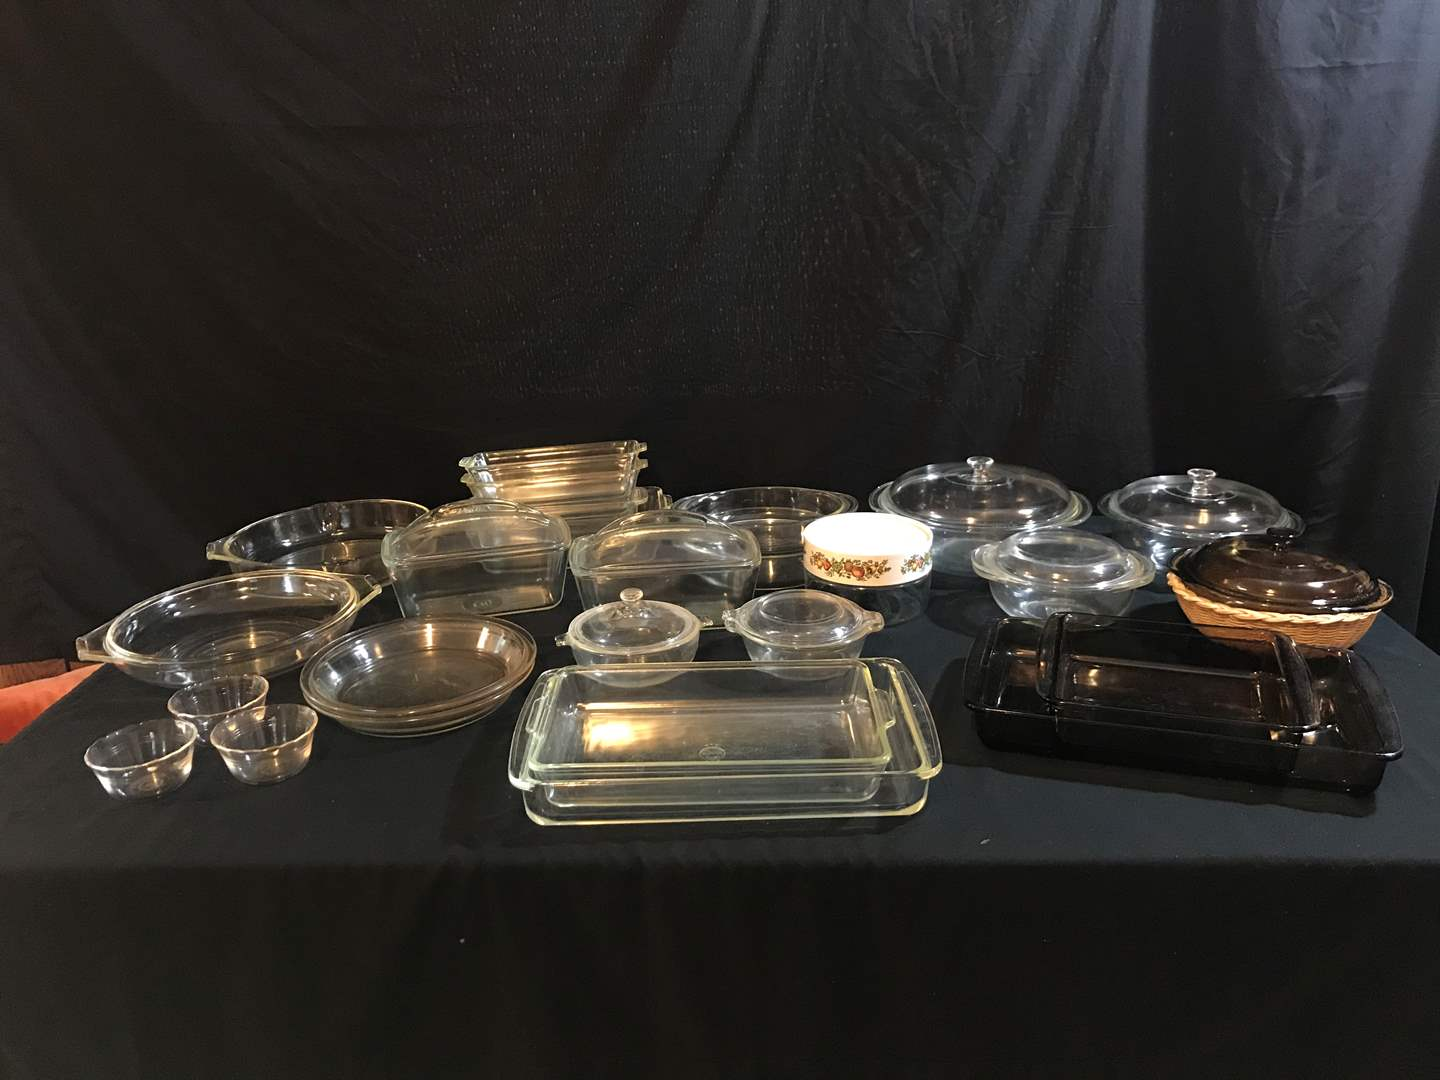 Lot # 82 - Selection of Pyrex Baking Dishes: Bread Dishes, Casserole Dishes, Pie Plates & Some Other Misc. Glass (main image)